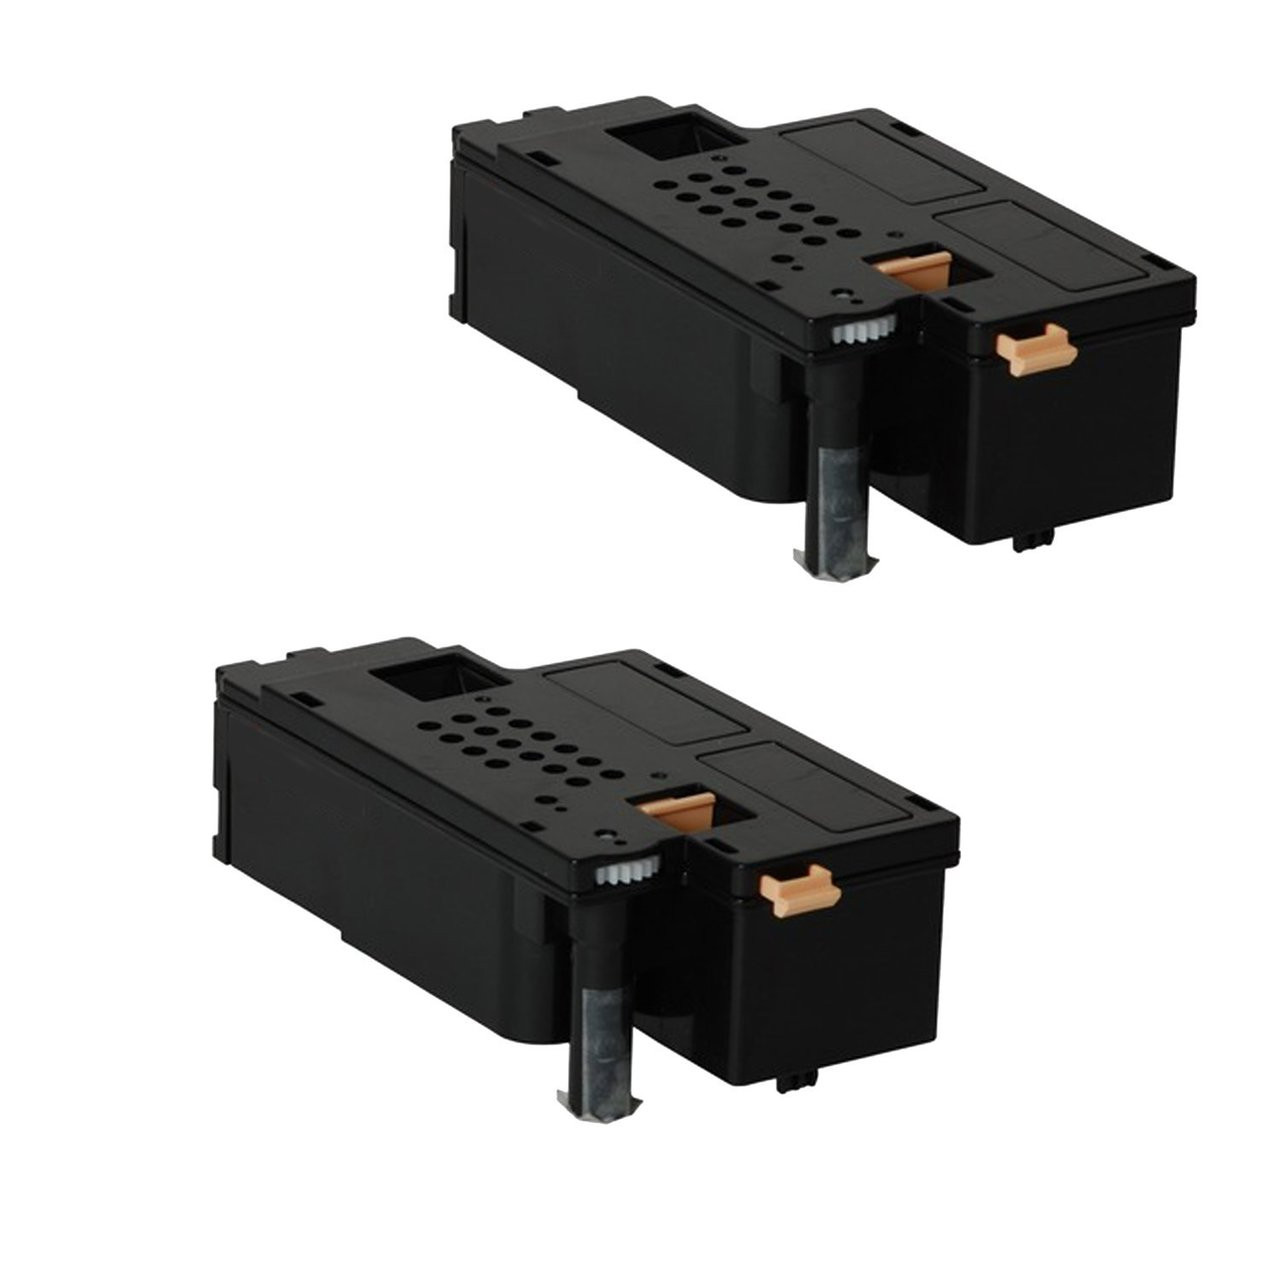 MG Compatible Toner Cartridges 6000B etc; Black Ink: CX6000HK-4 106R01630; Models: Phaser 6000 Replacement for Xerox 106R1630 6010